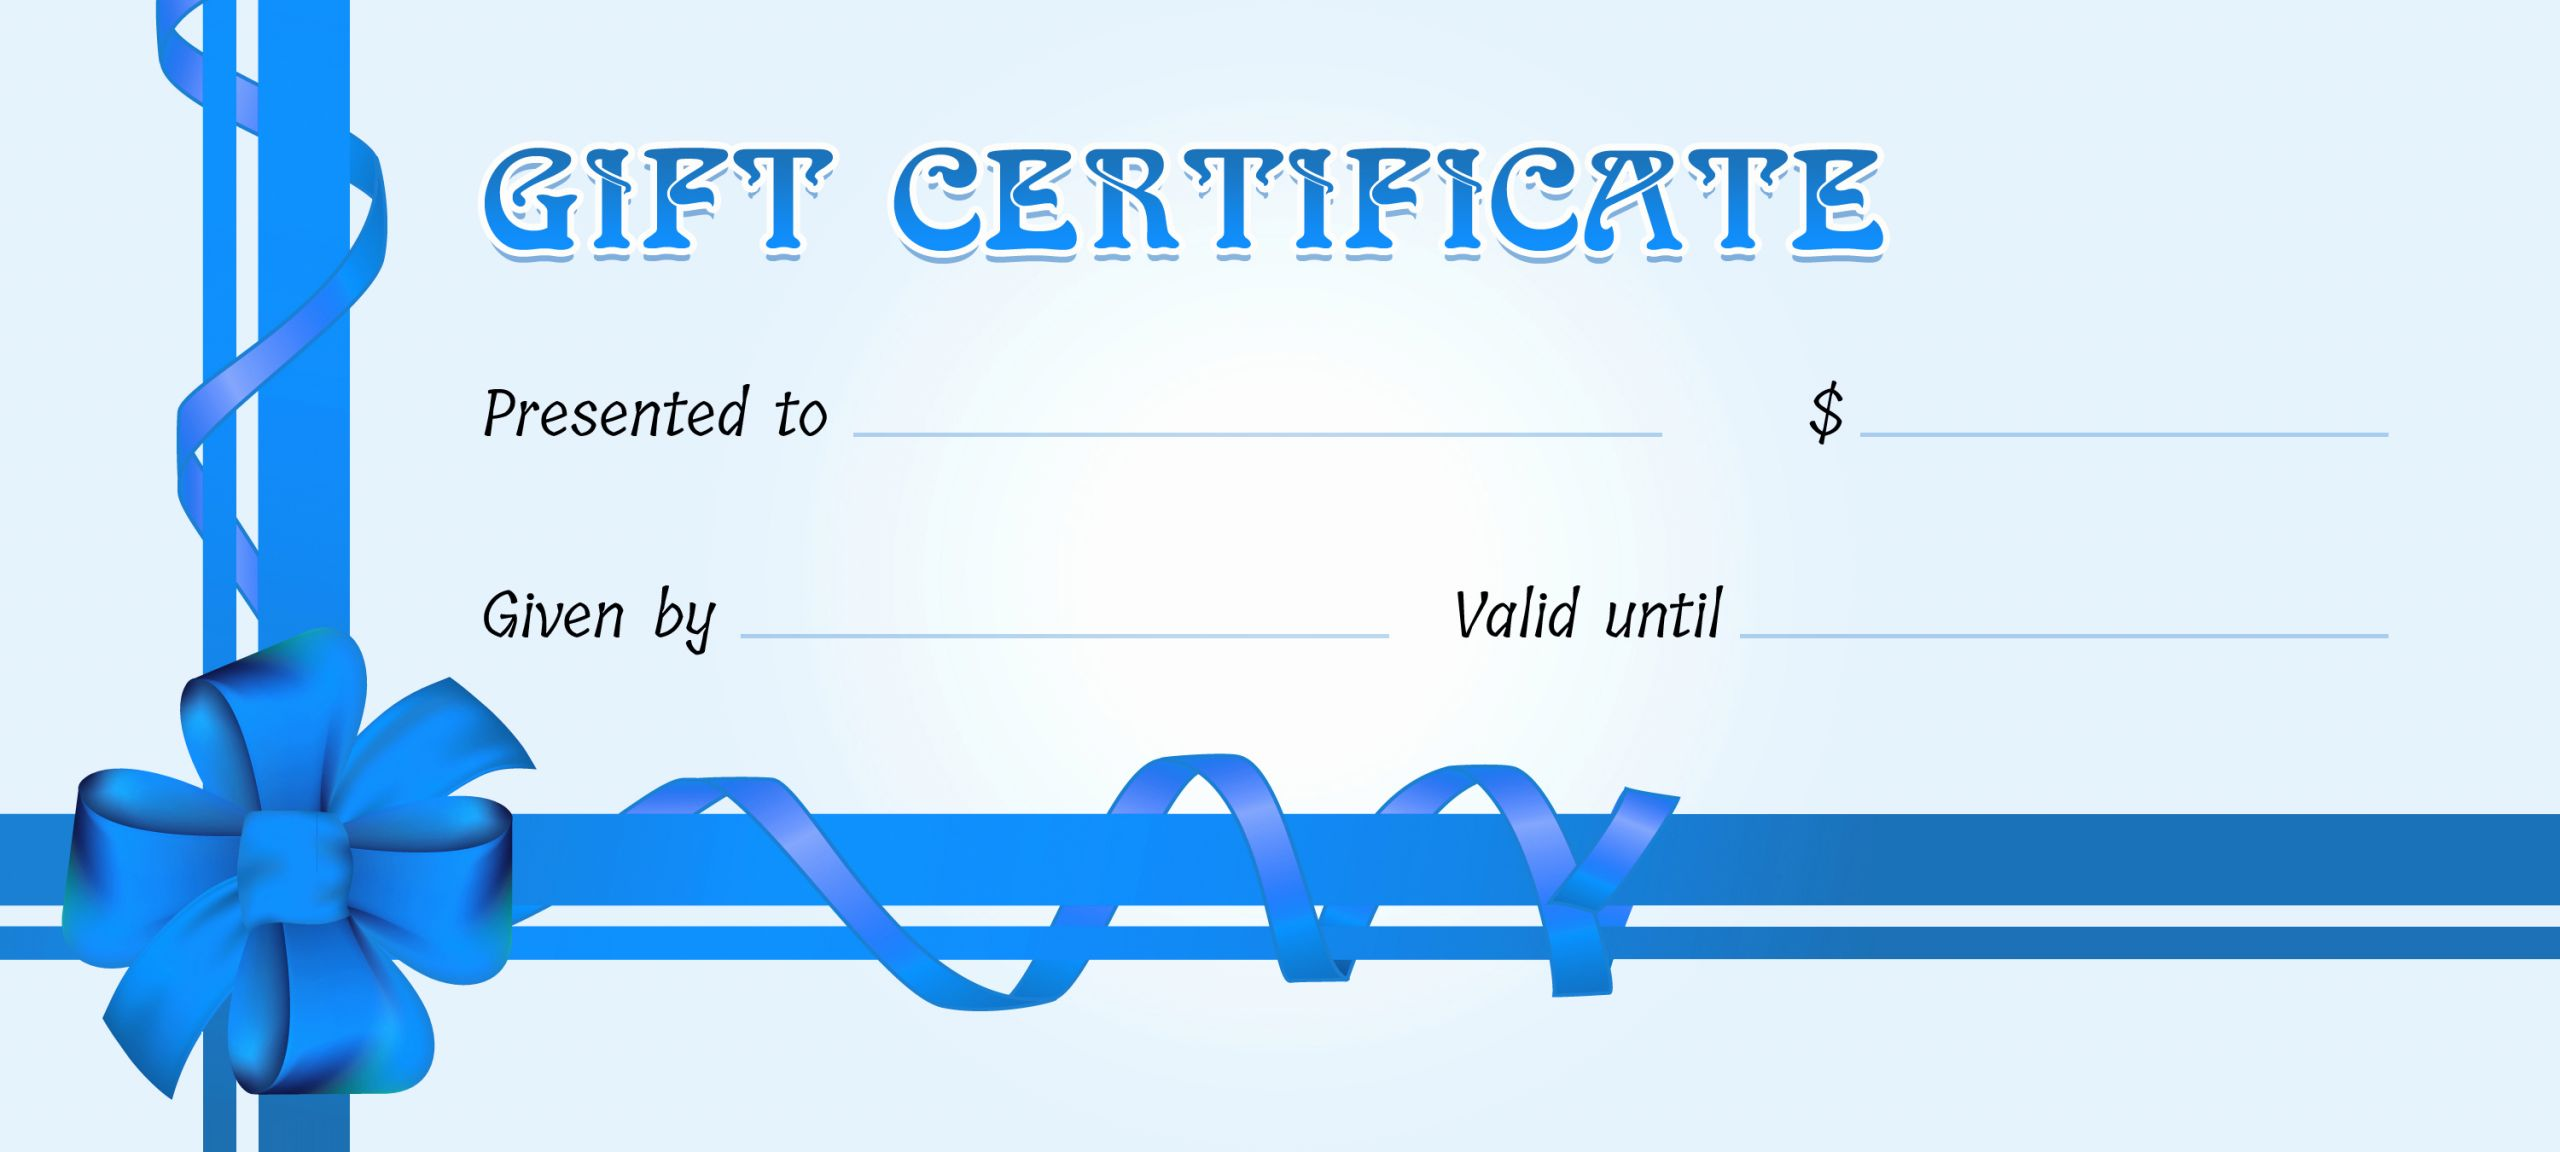 Email Gift Certificate Template Beautiful Business Gift Certificates for All events